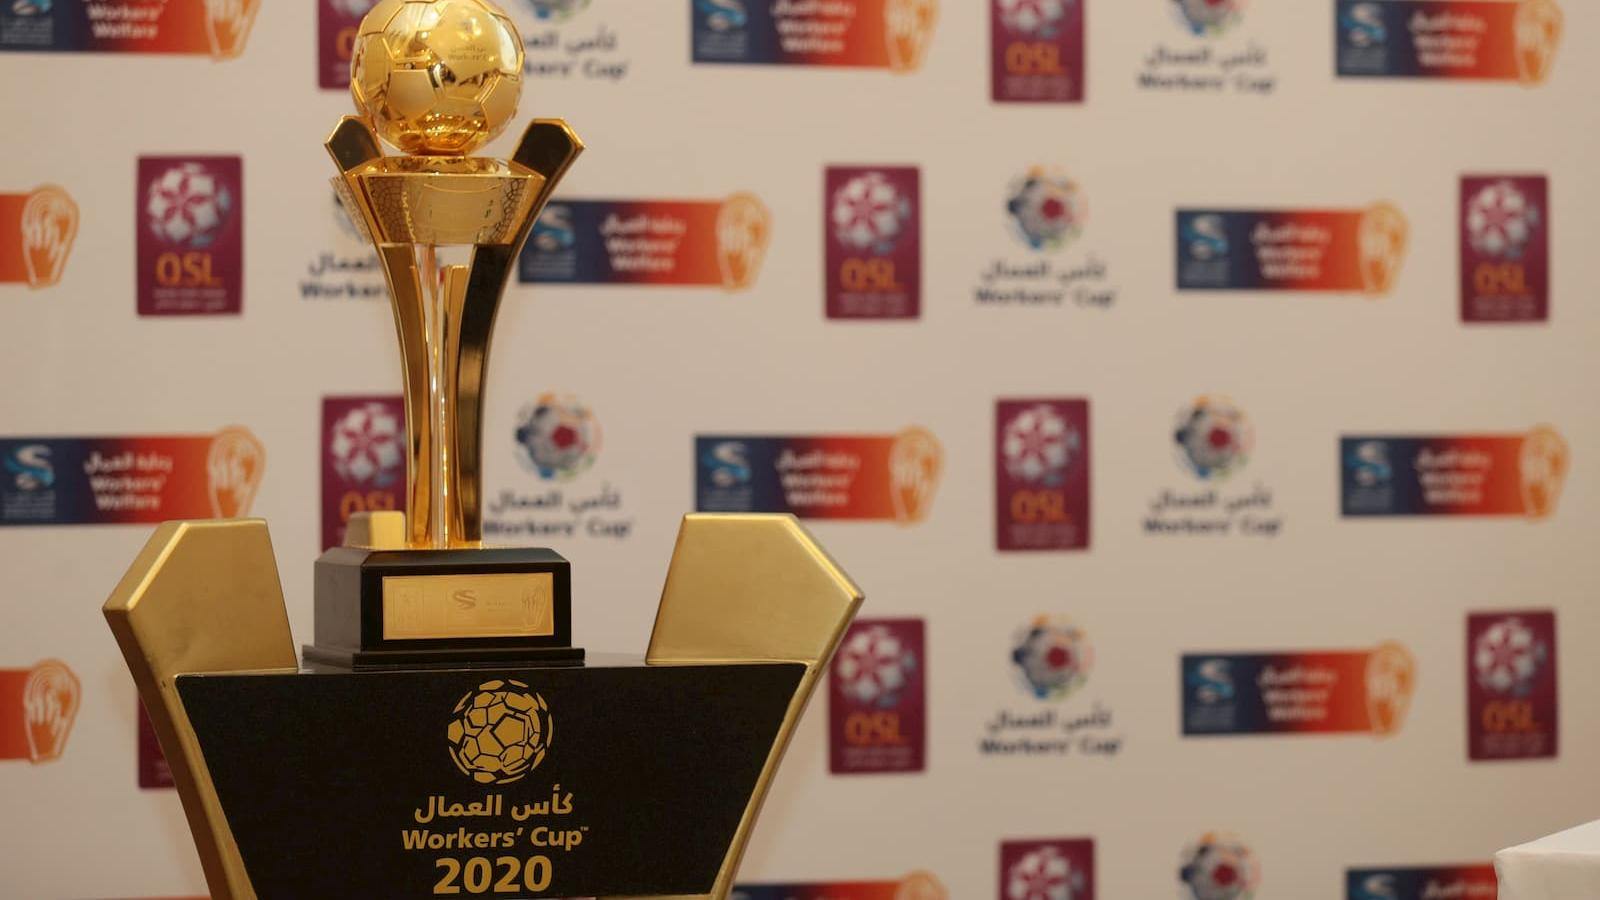 2020 Workers' Cup matches to be held at Qatar 2022 training sites